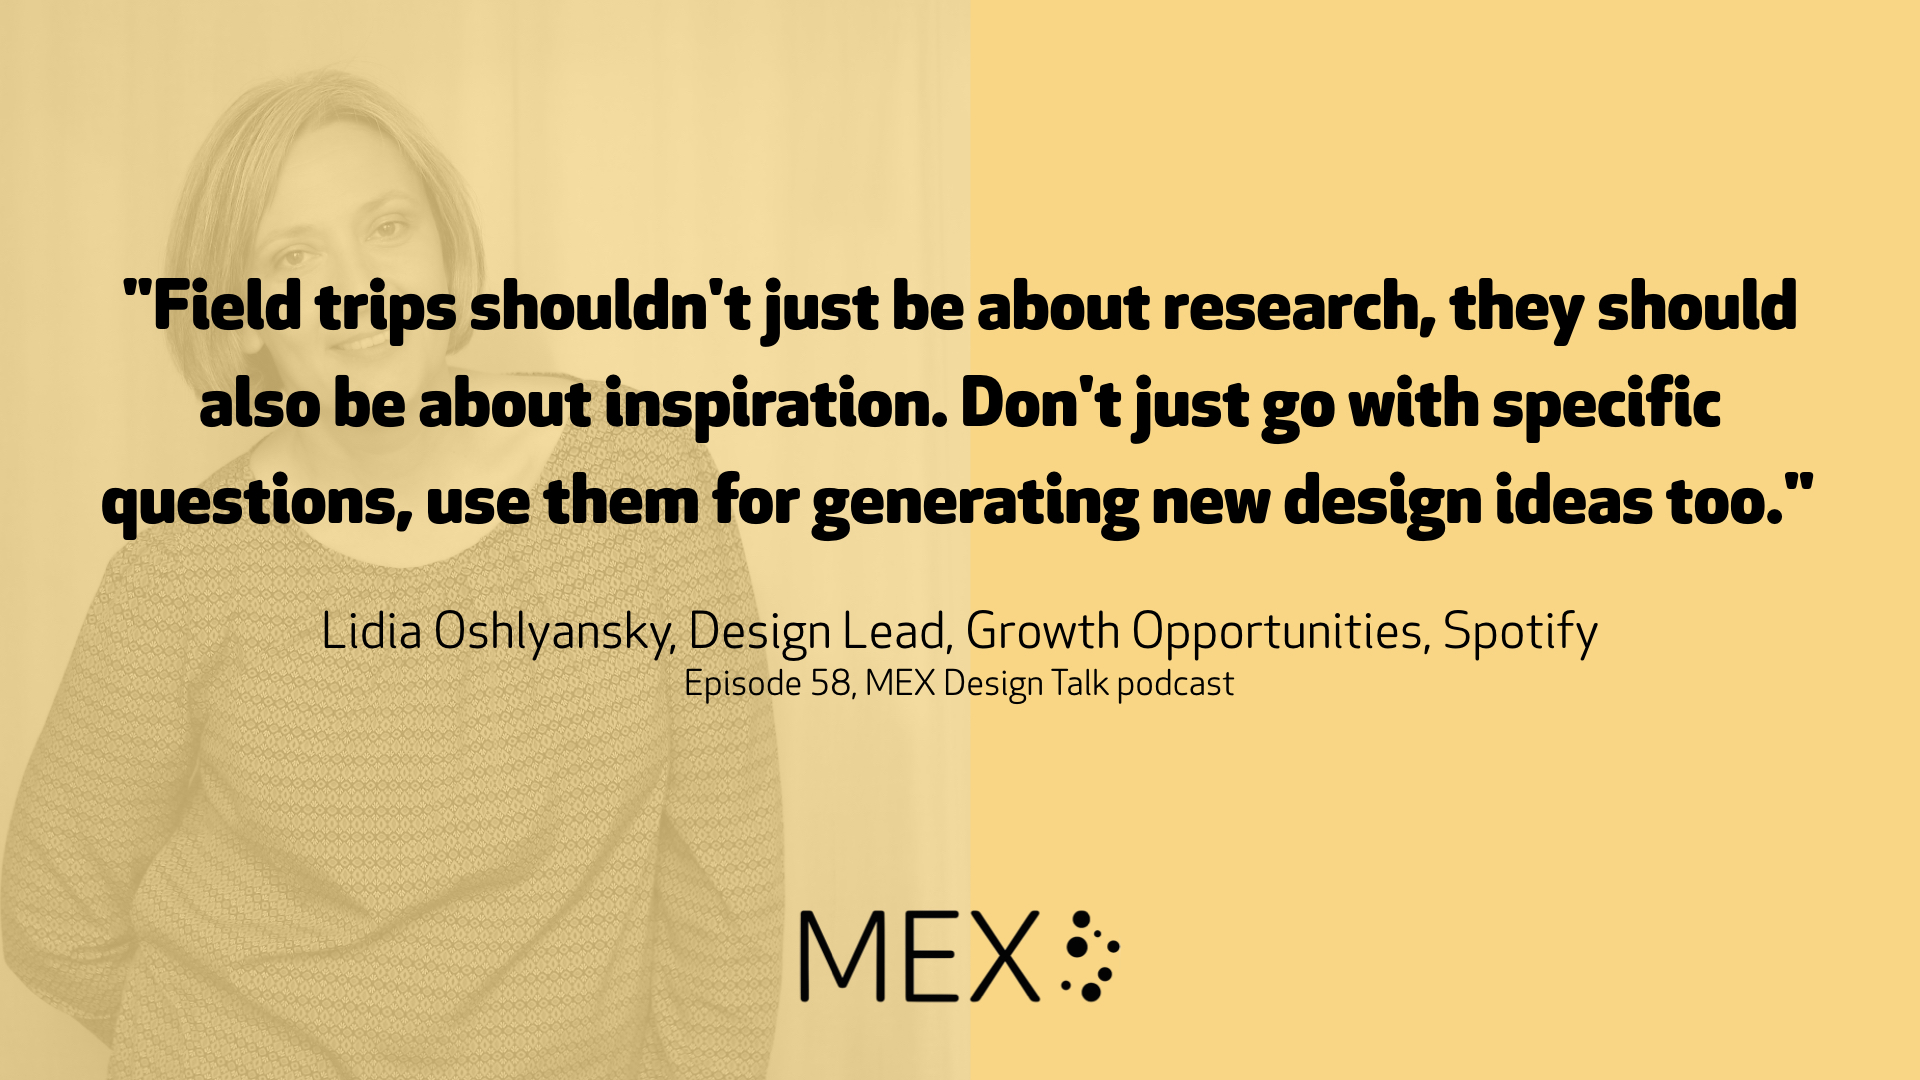 """Field trips shouldn't just be about research, they should also be about inspiration. Don't just go with specific questions, use them for generating new design ideas too.""	  Lidia Oshlyansky, Design Lead, Growth Opportunities, Spotify Episode 58, MEX Design Talk podcast"